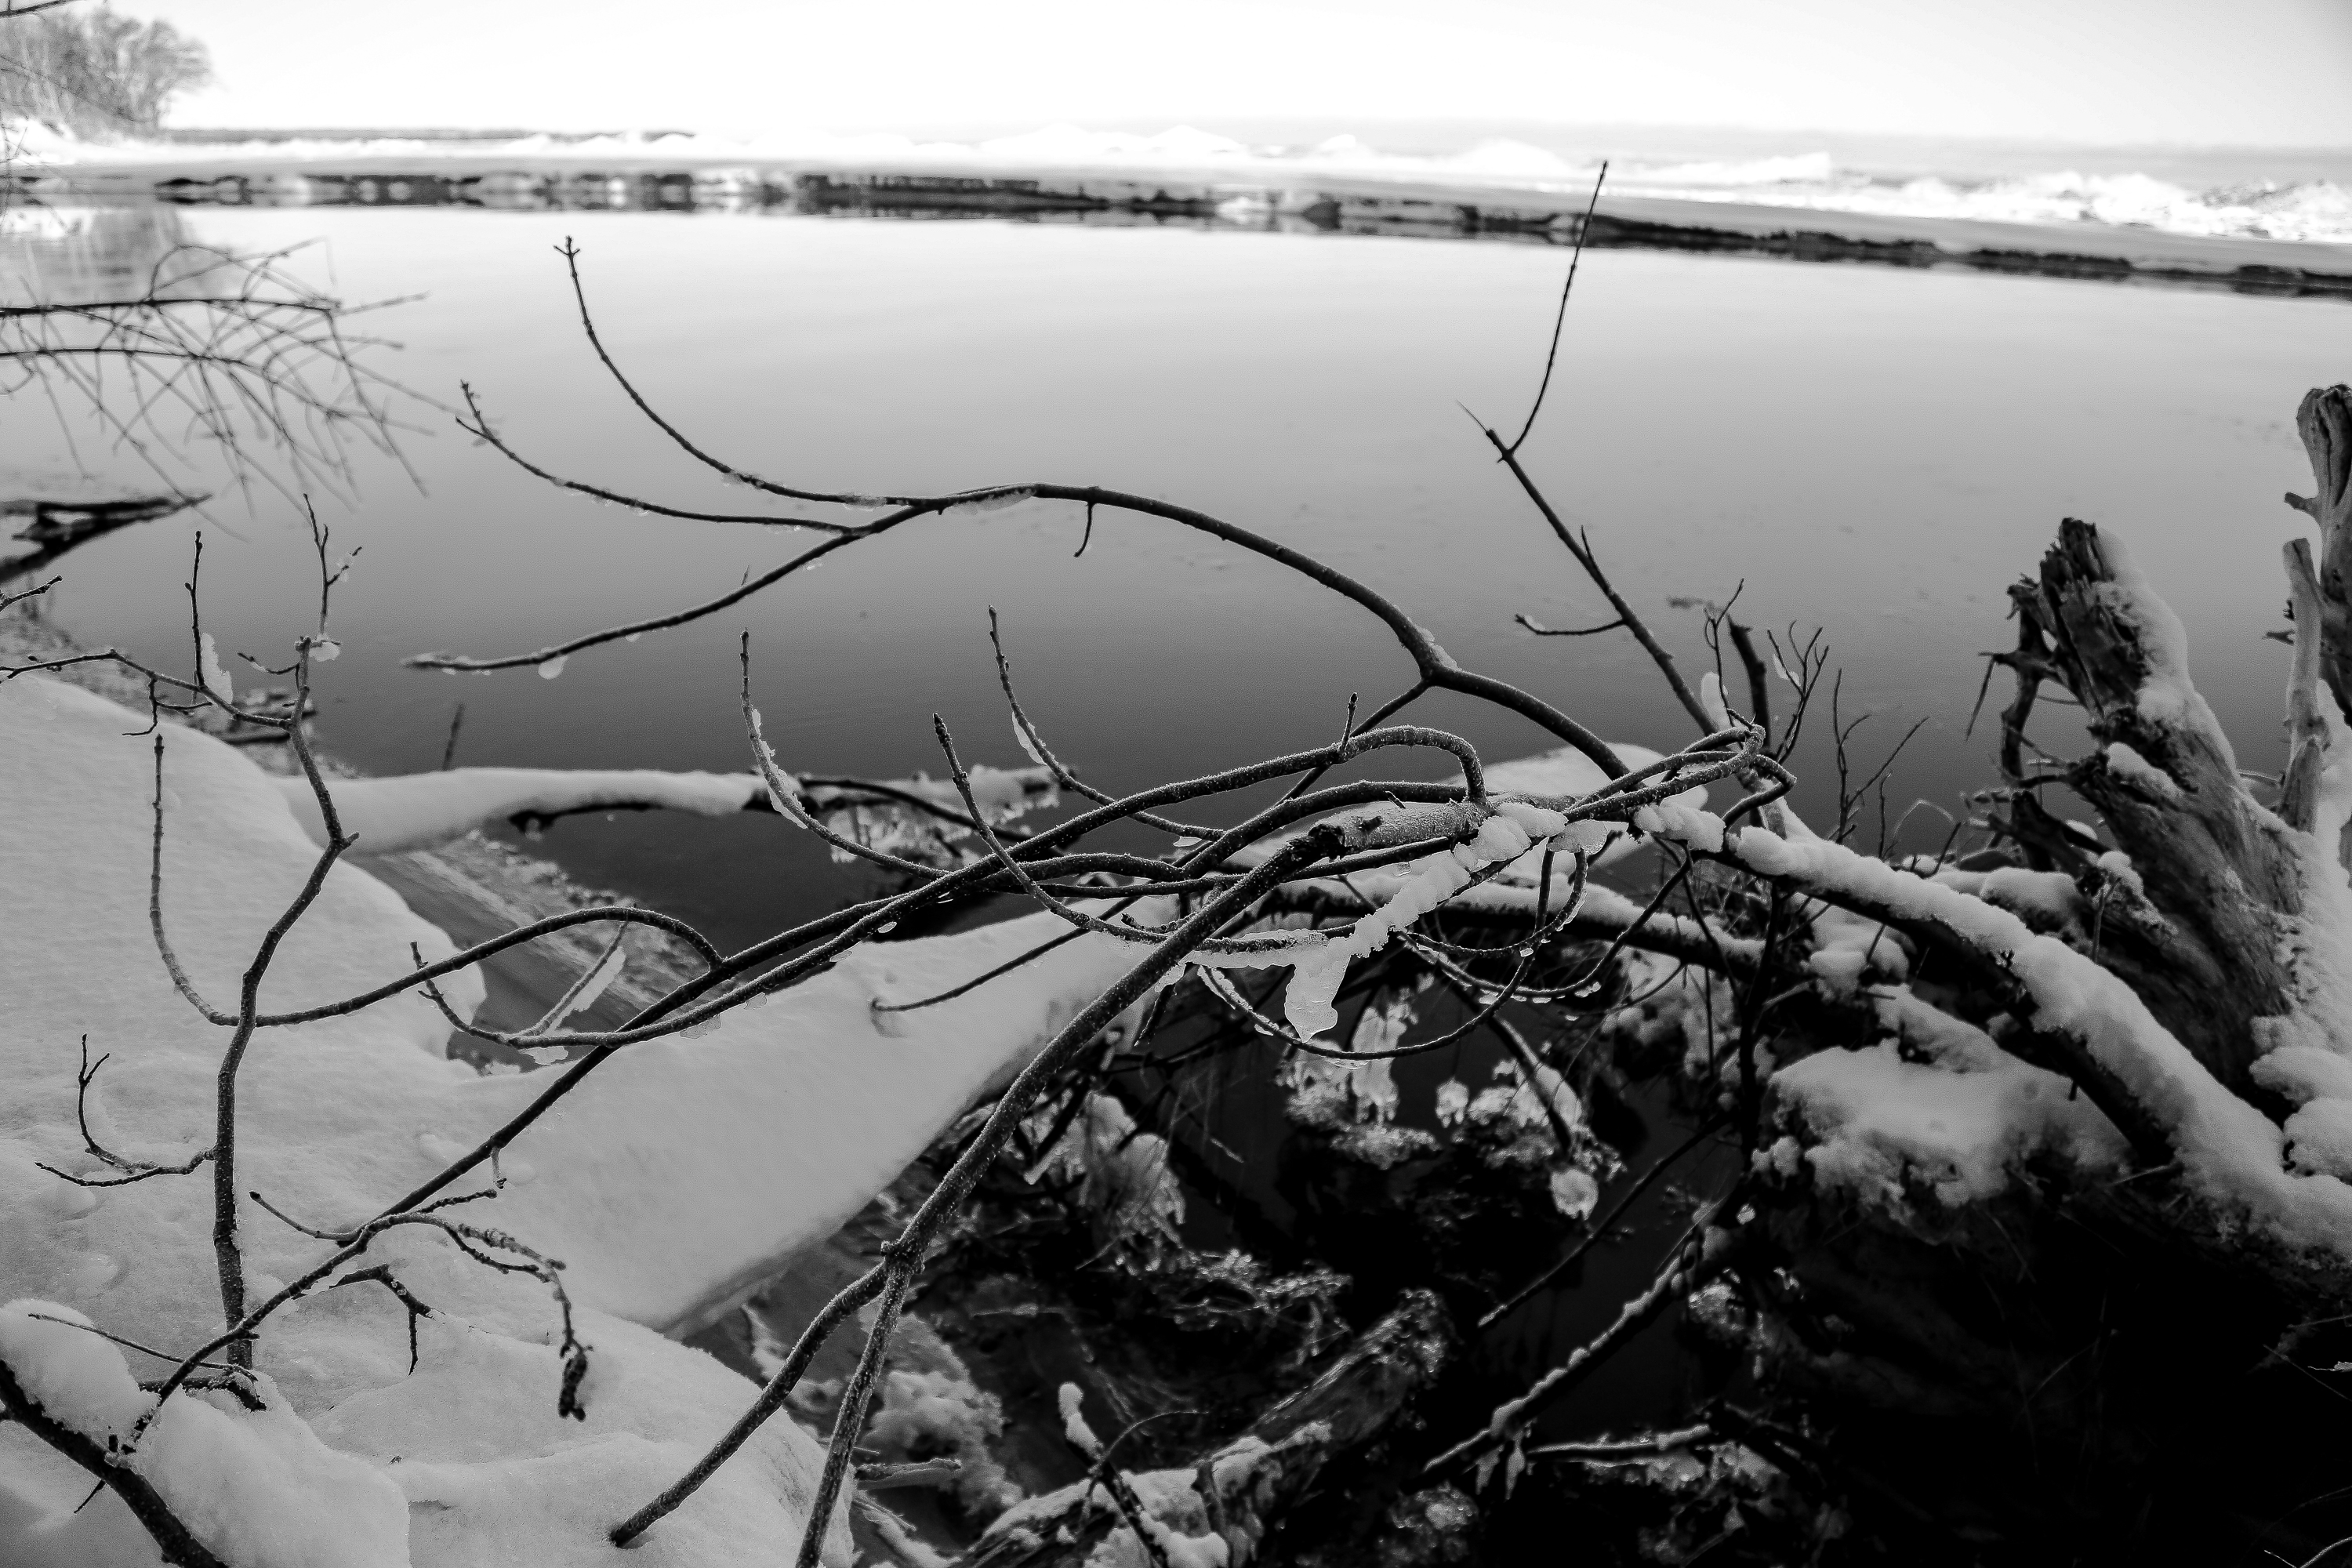 Landscape photography during the winter months of snow and ice at Misery Bay, located in Toivola, Michigan.